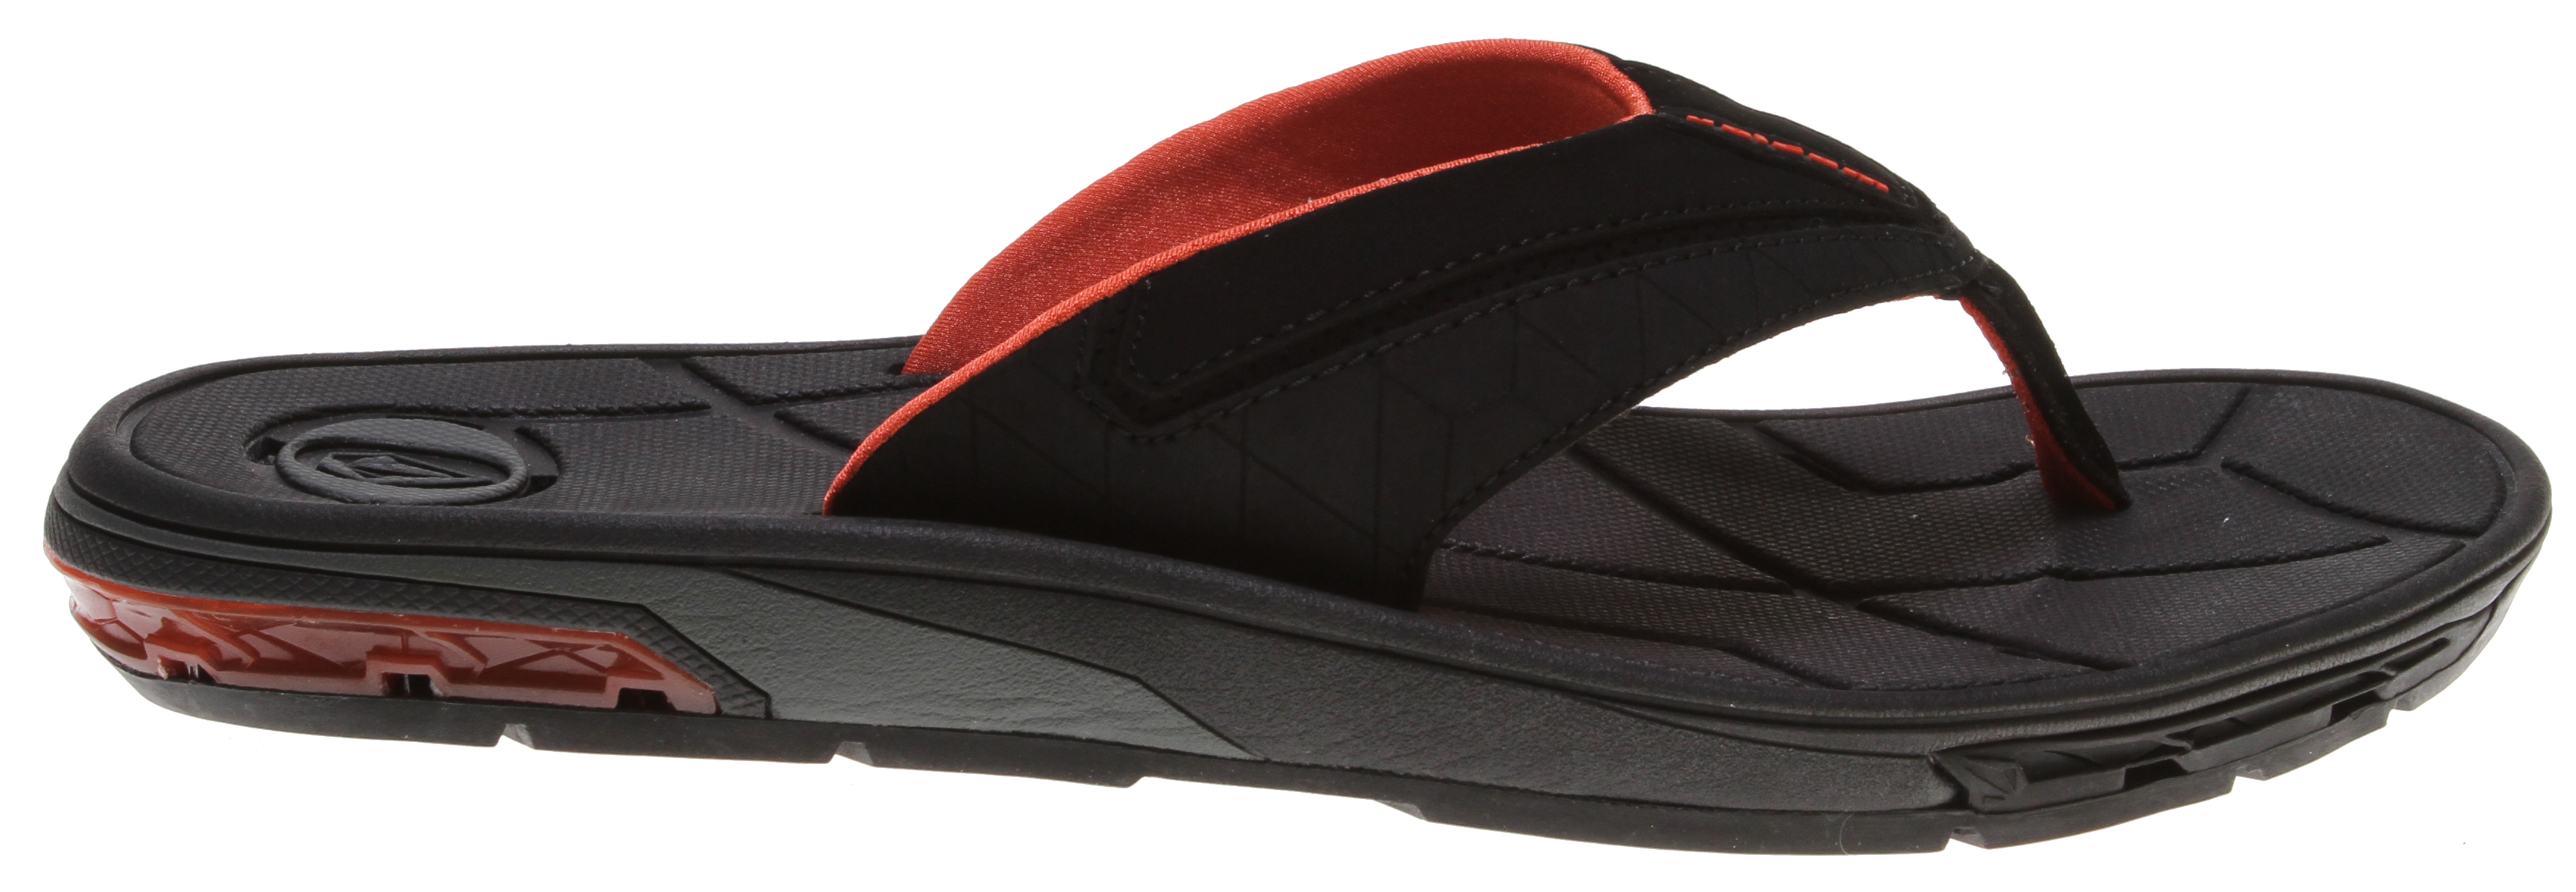 Surf Holy rubber sandals! The Main Drain Creedlers will have you walking on water. Or rather, their footbed's molded drain channels will move water out from under your feet to improve traction in the muckiest of conditions. Hallelujah.Key Features of the Volcom Main Drain Creedlers Sandals: Contoured EVA insole with anatomical arch support. Fully molded TPR gel heel provides maximum comfort and rebound. Upper is made from soft nubuck. Straps are lined with Lycra. - $42.95